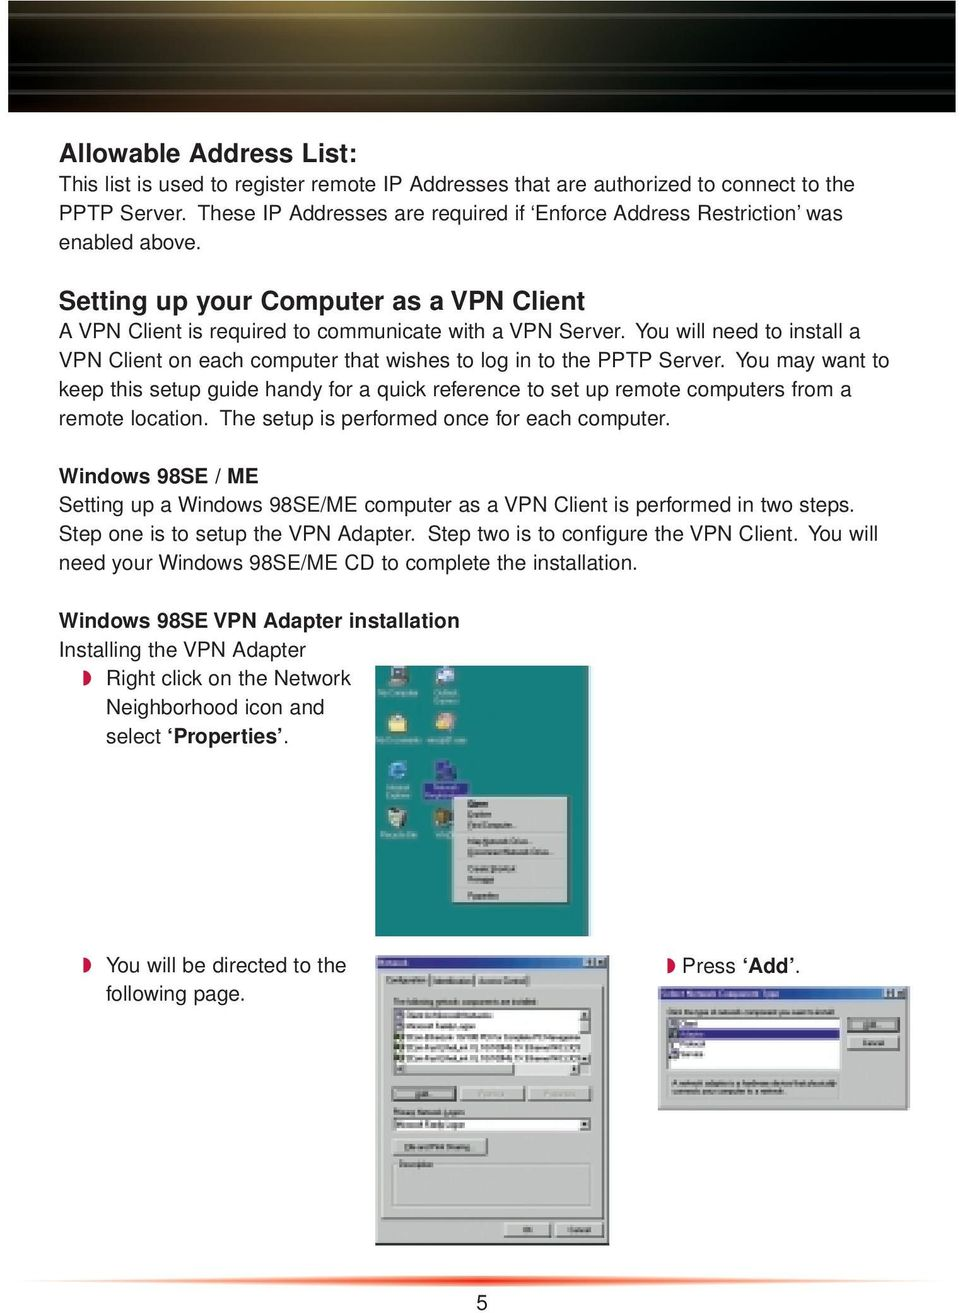 You will need to install a VPN Client on each computer that wishes to log in to the PPTP Server.